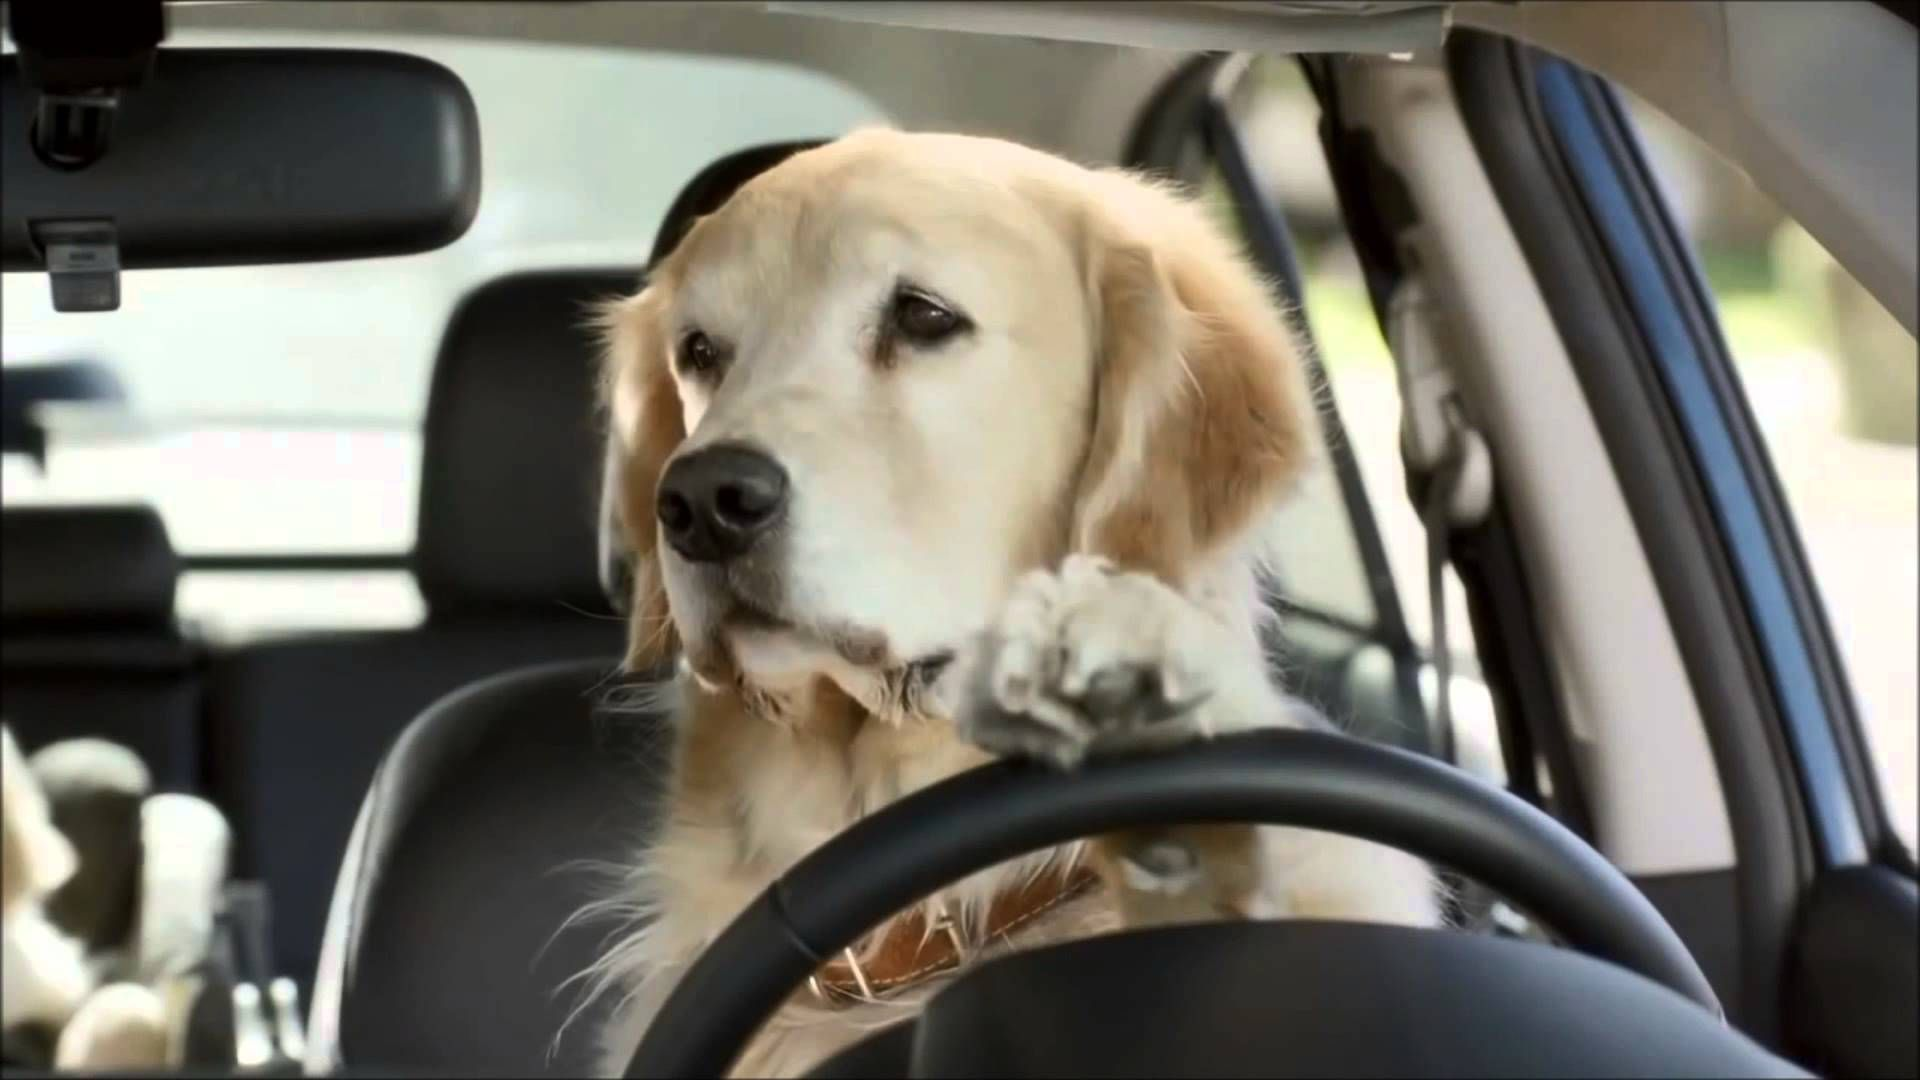 Subaru Dog Commercial - funny commercials! | Subaru ...